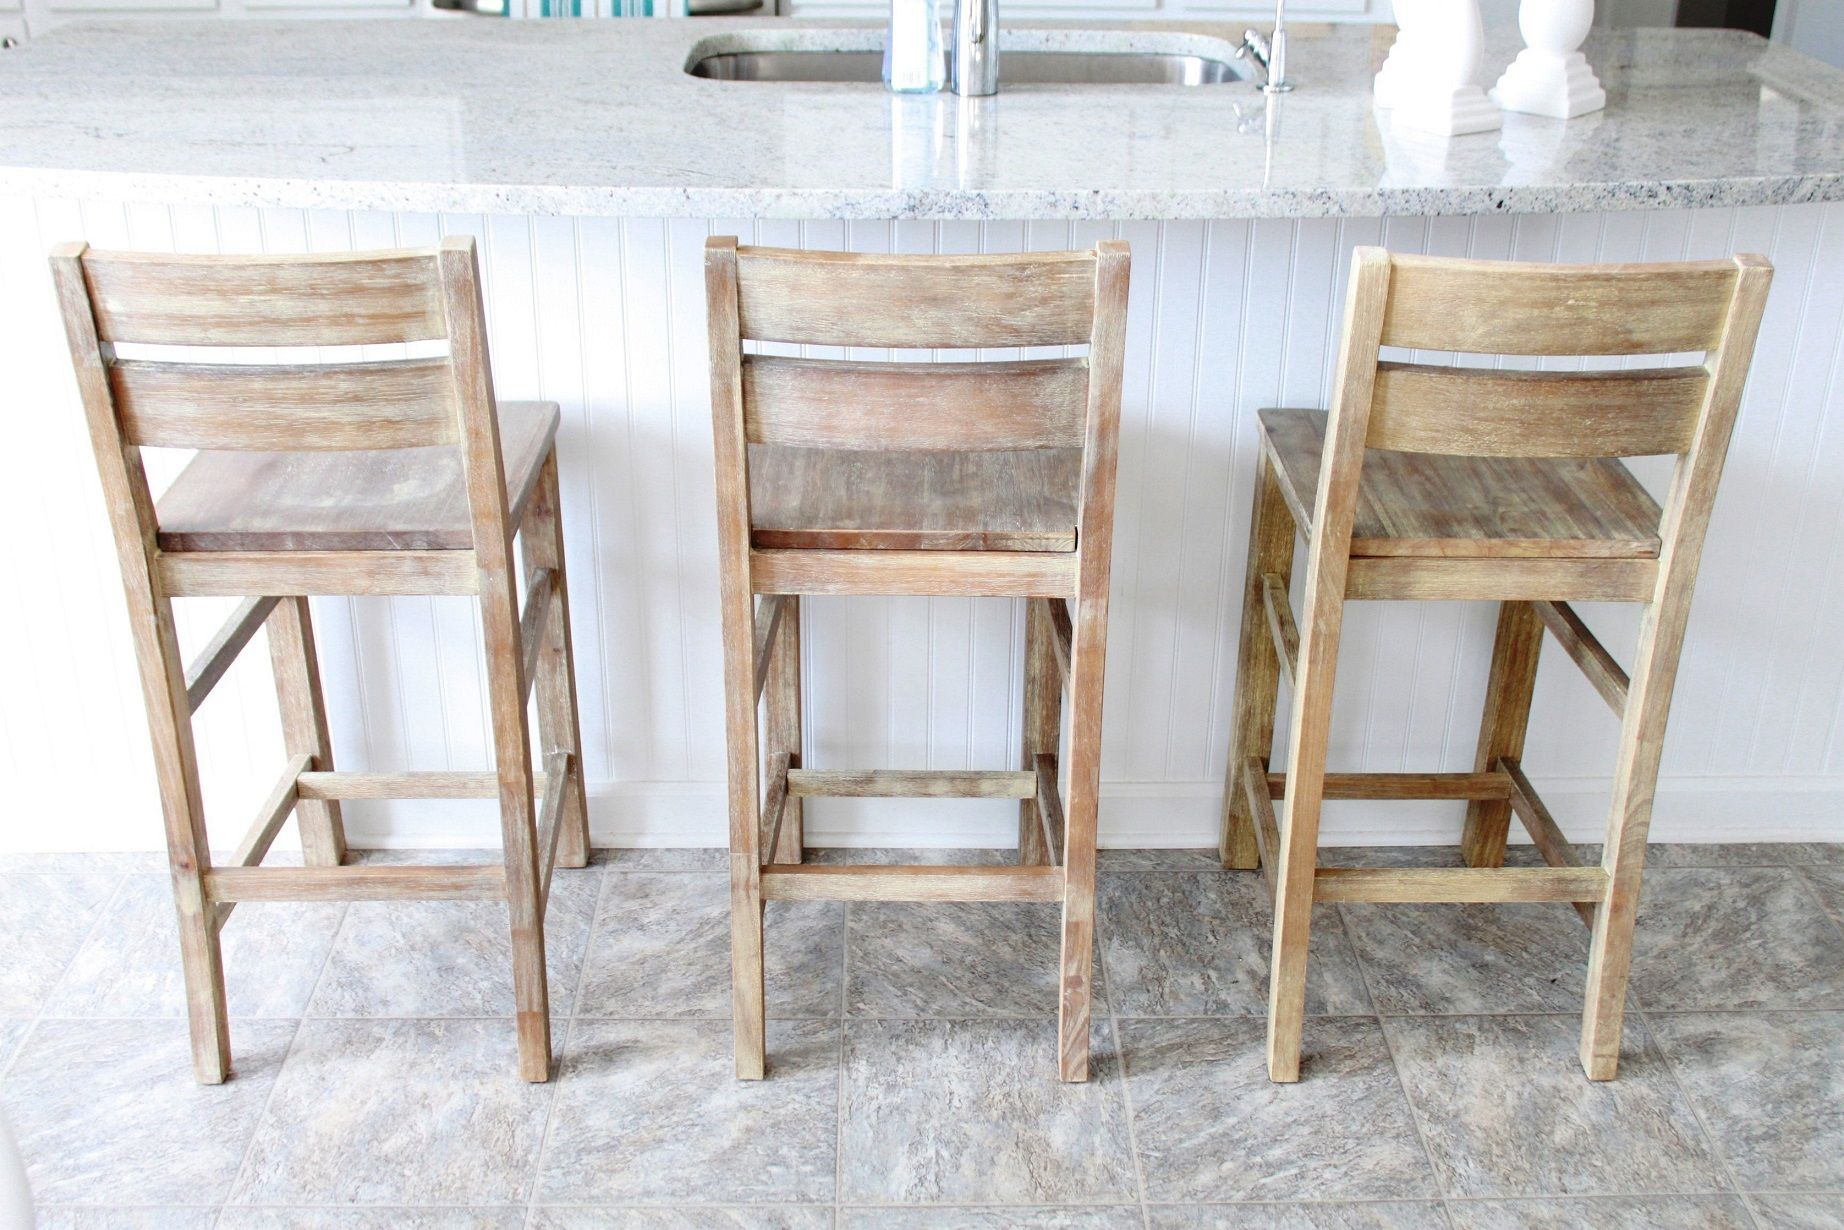 Cheap High Bar Stools Diy Bar Stools With Backs Ideas Kitchen In 2019 Diy